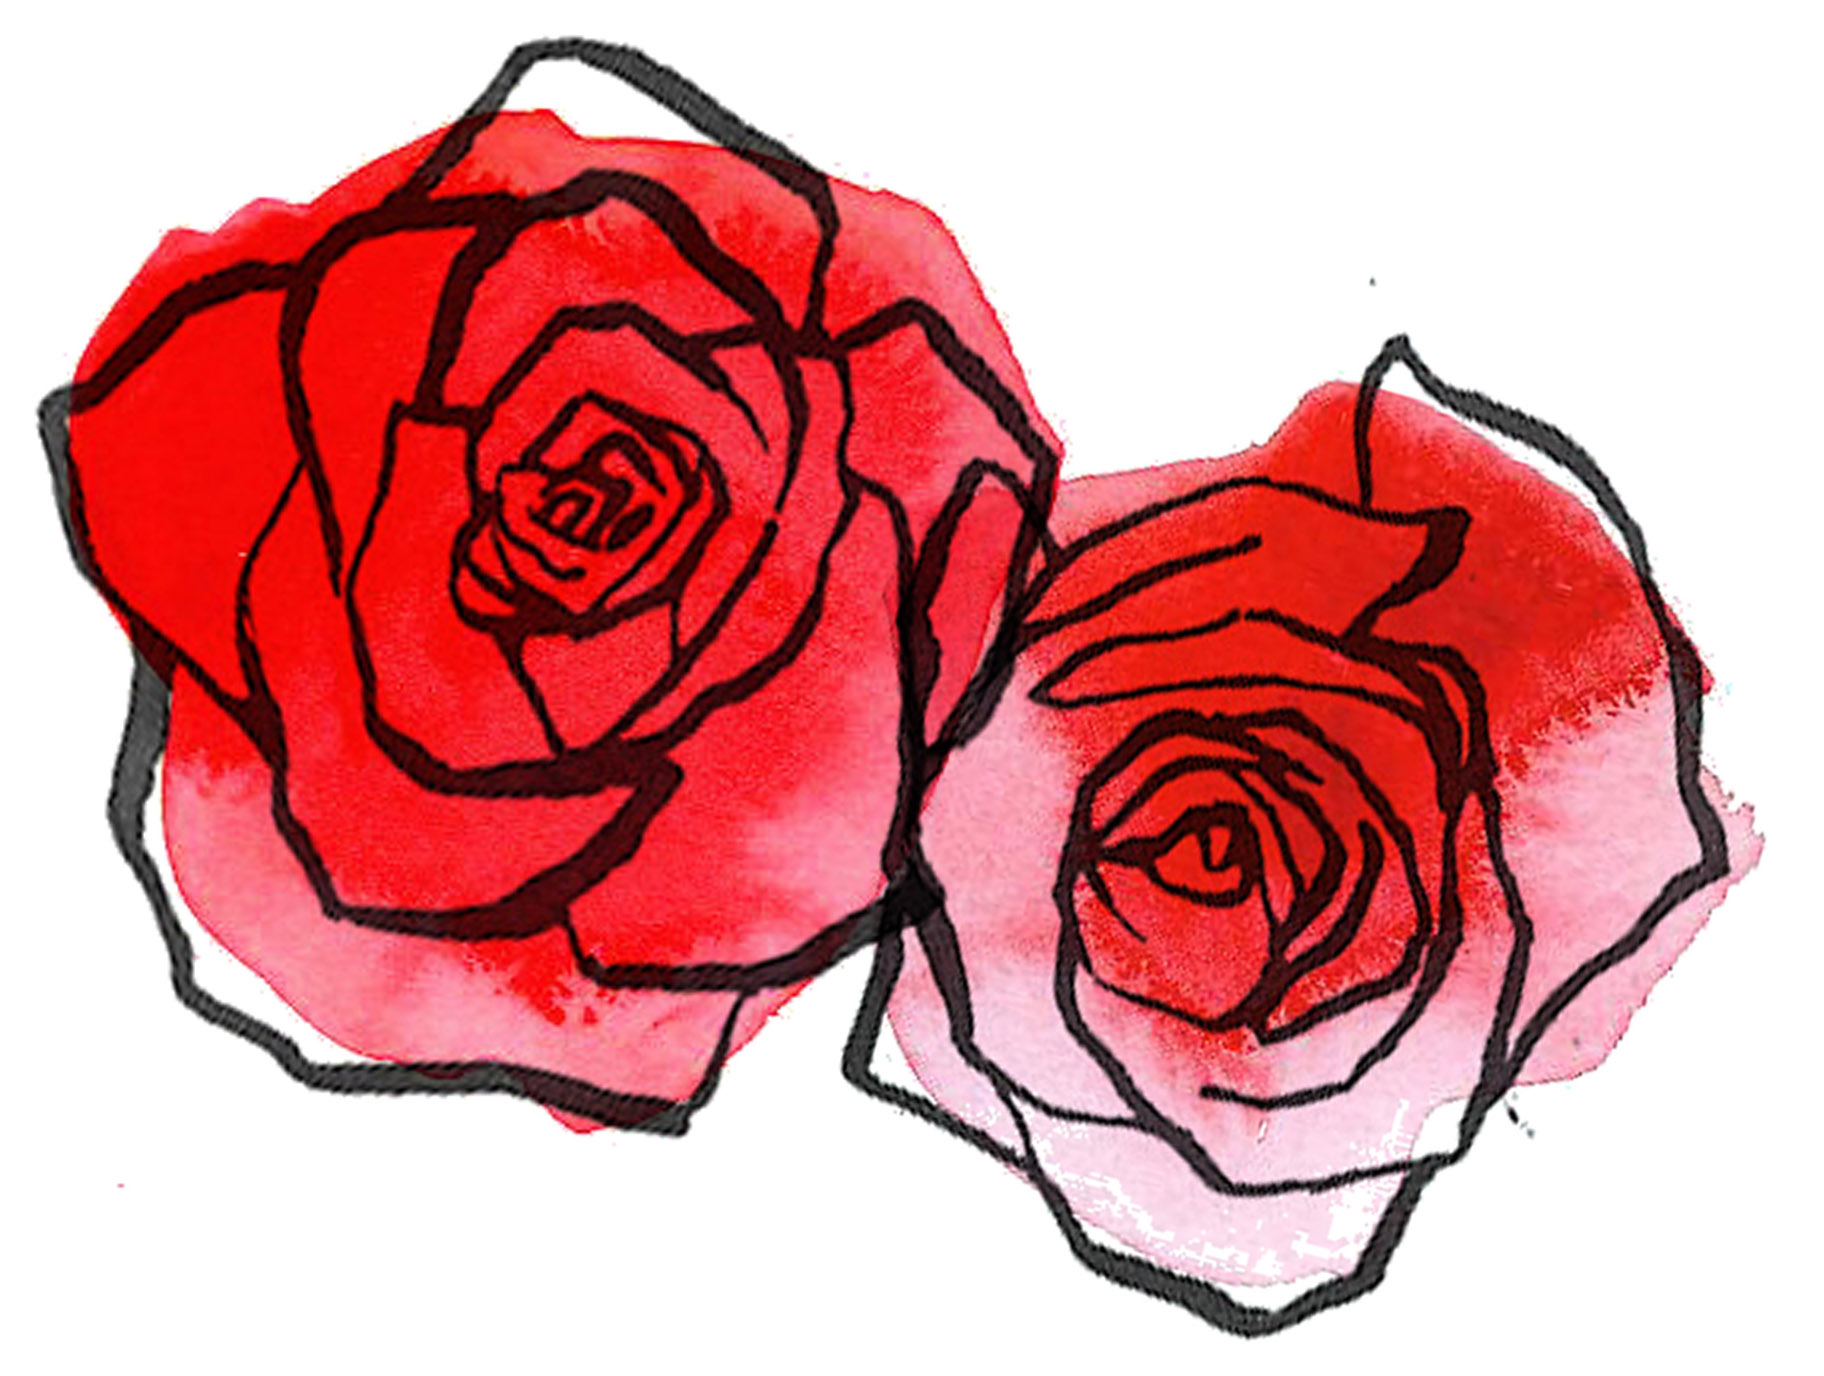 Drawn red rose watercolor Easy Alfa Rose Showing Drawing